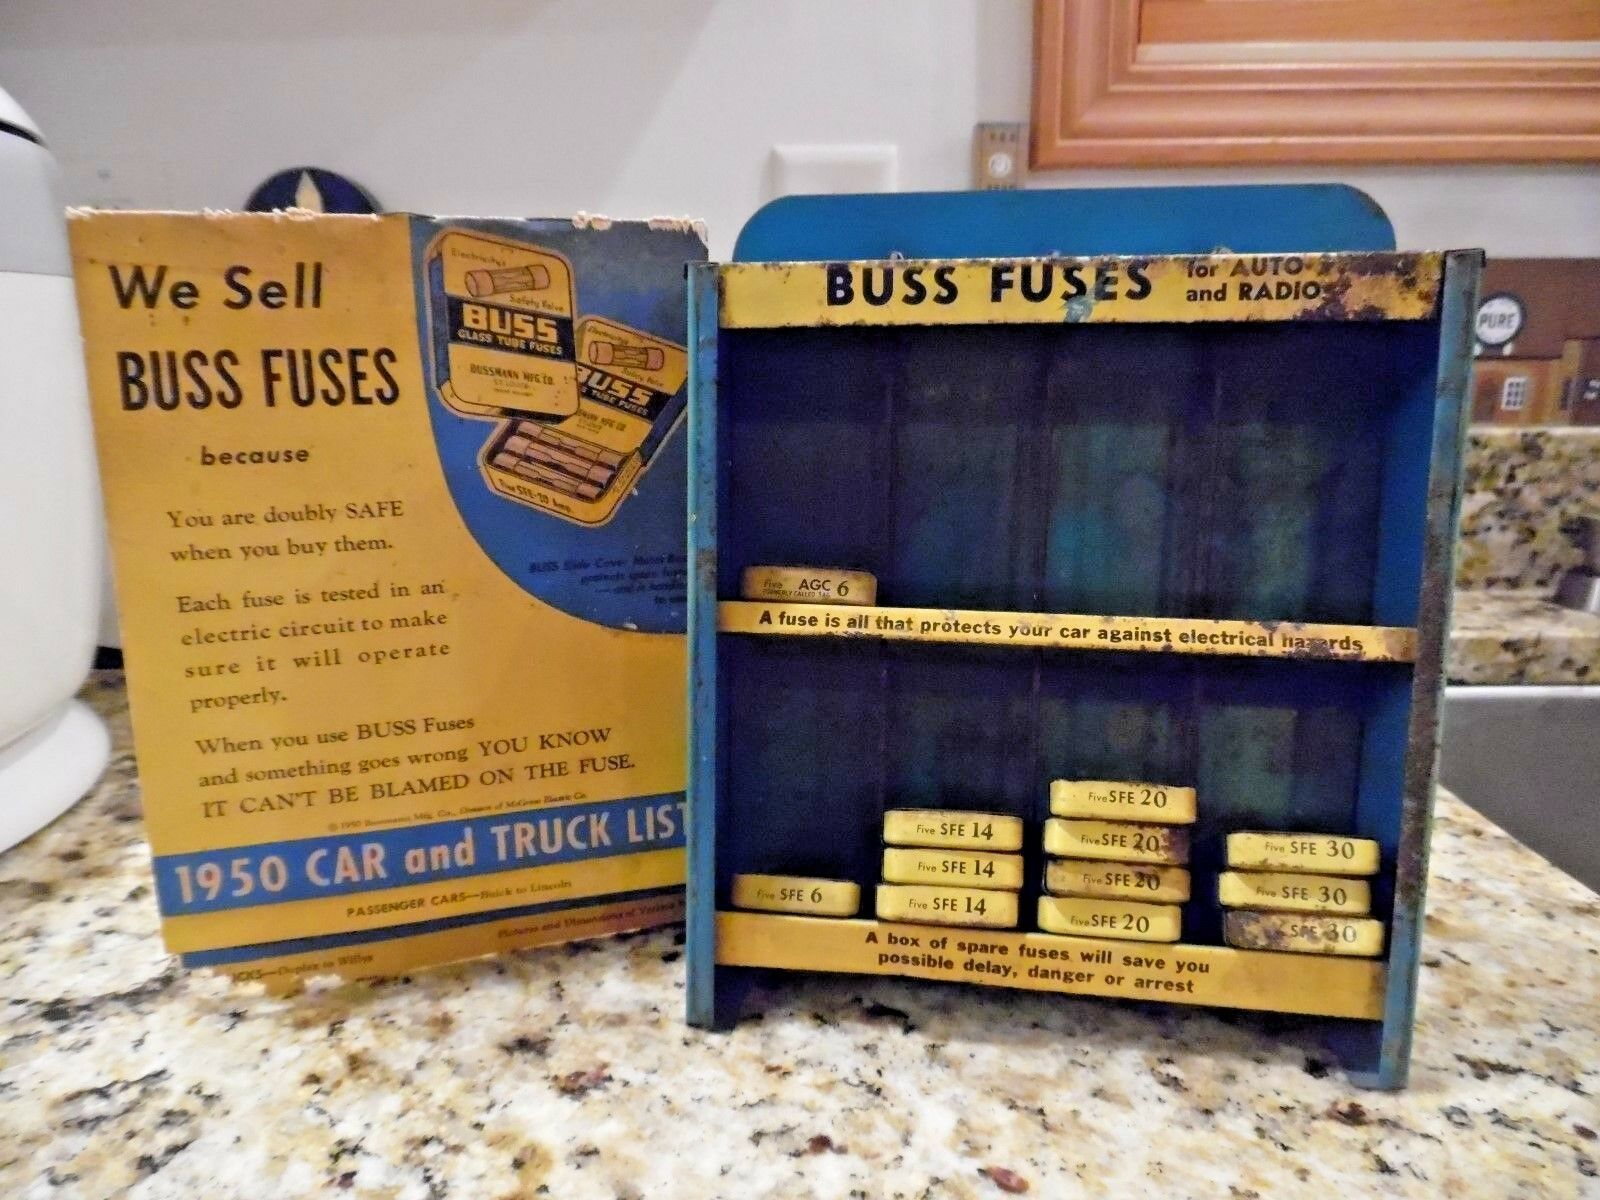 Vintage Metal Buss Fuses Display And 1950 Car Truck List Fuse Boxes From The 1 Of 12 See More